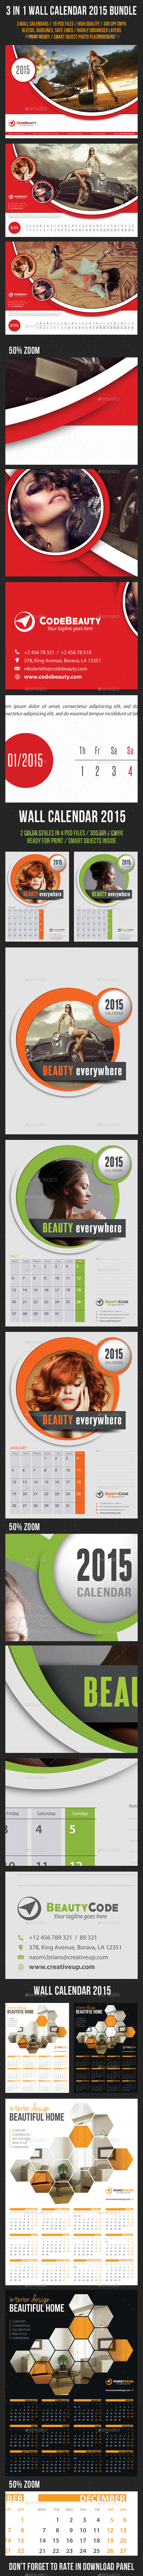 GraphicRiver 3 in 1 Wall Calendar 2015 Bundle V02 9426021